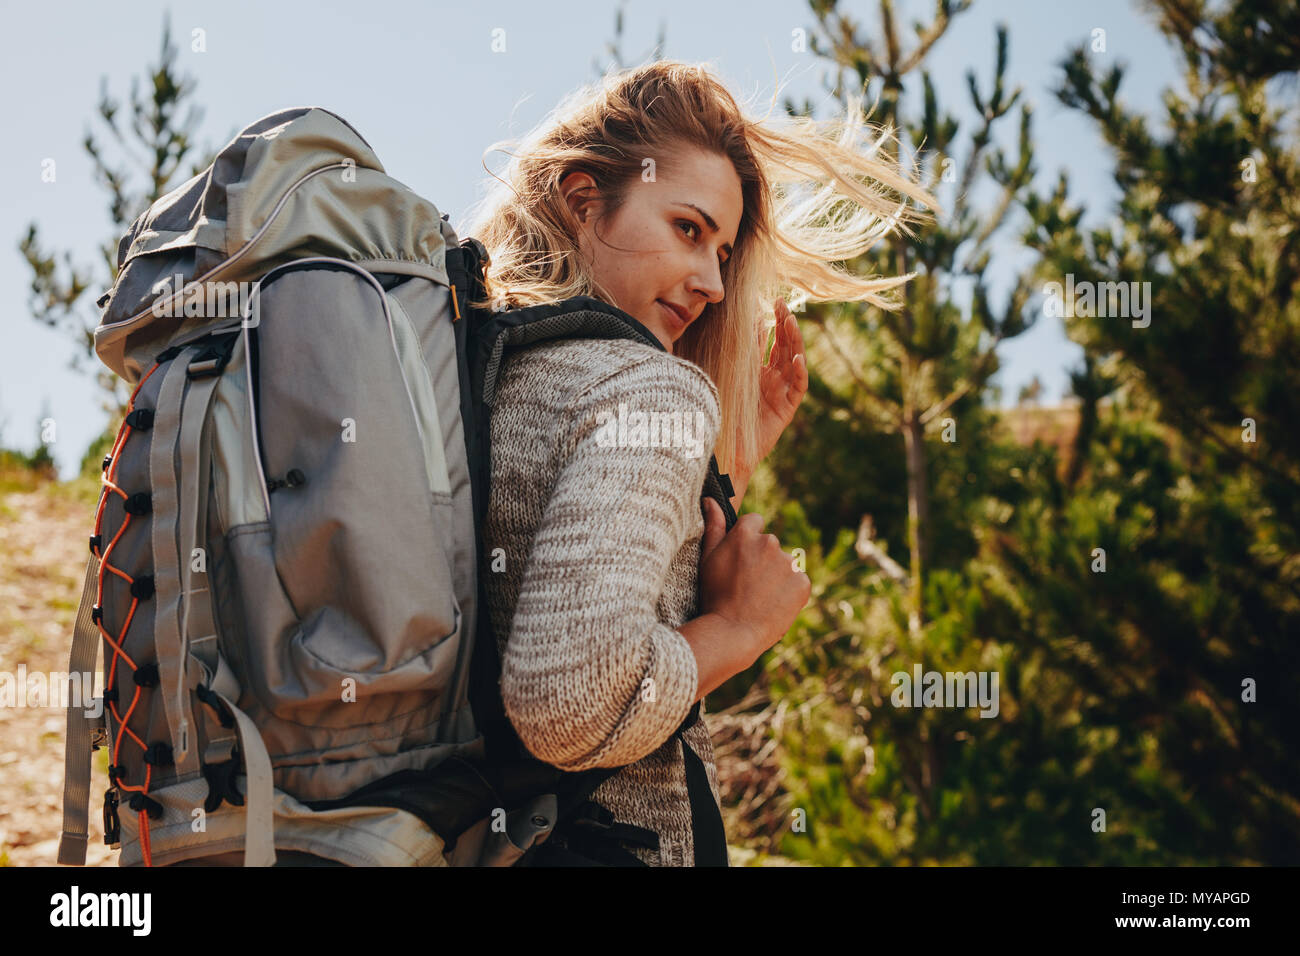 Woman with backpack on hike in nature. Female hiker on mountain trail and looking at a view. - Stock Image